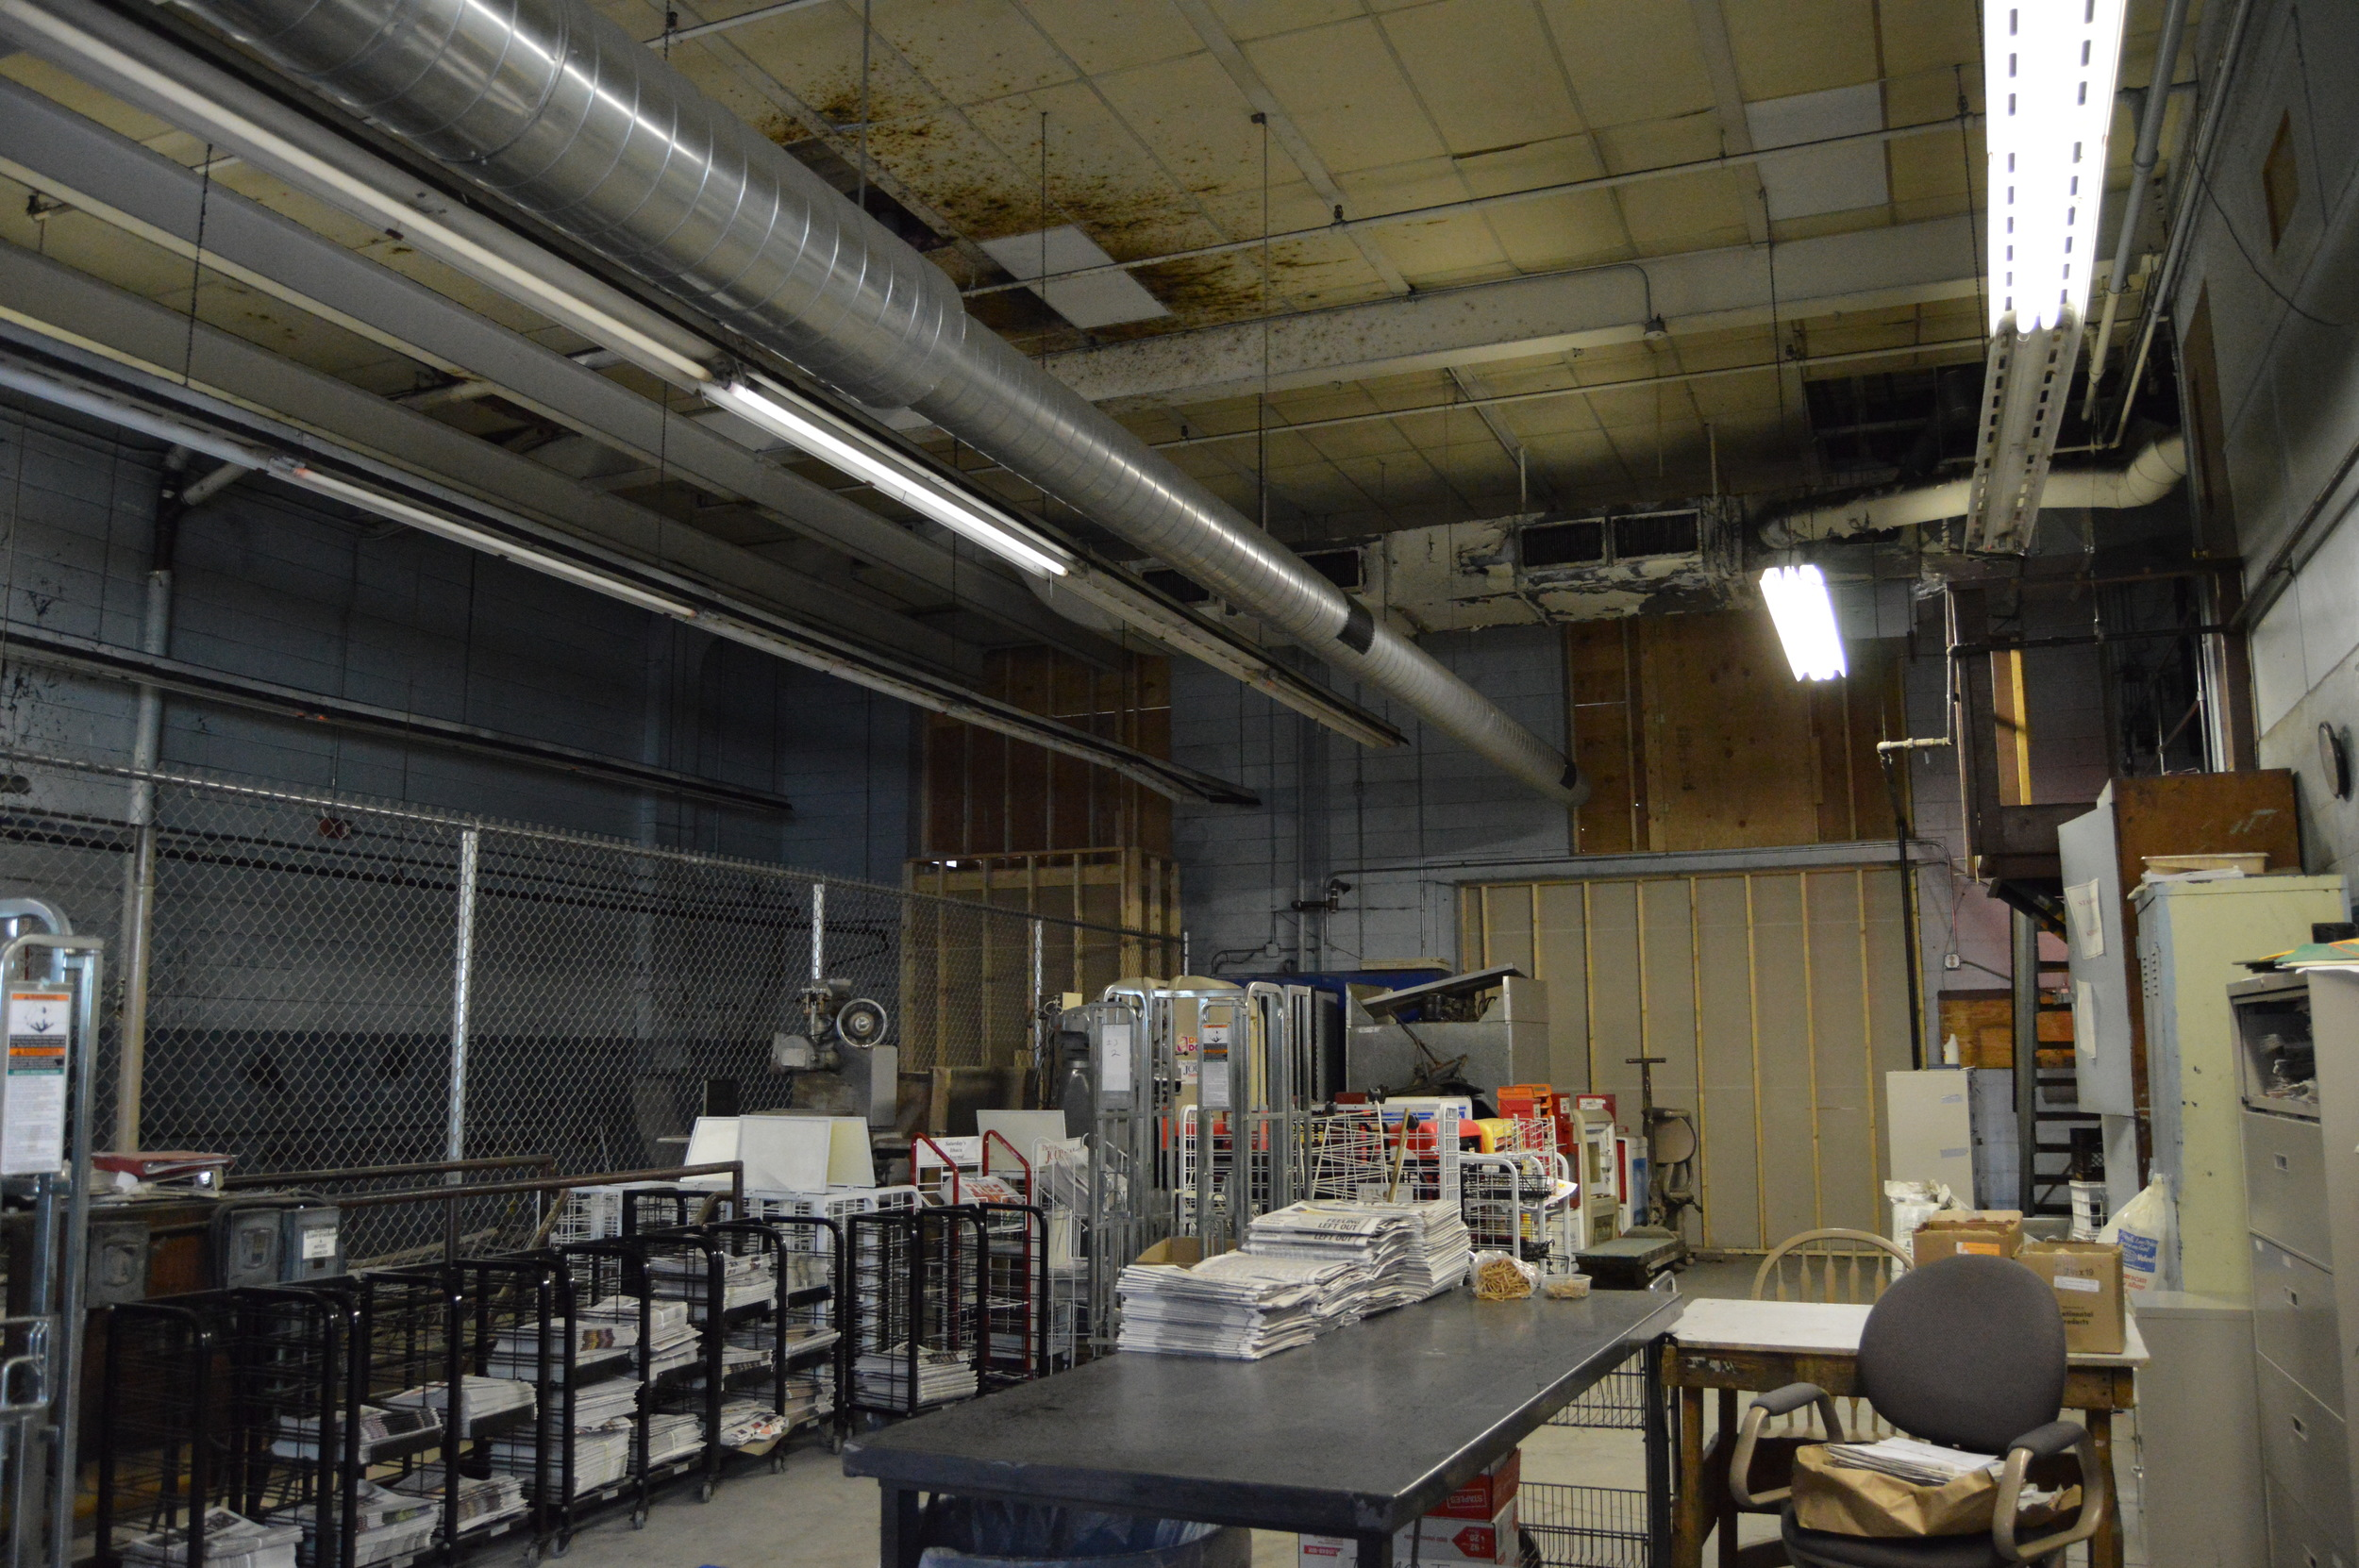 This is what our space used to look like!